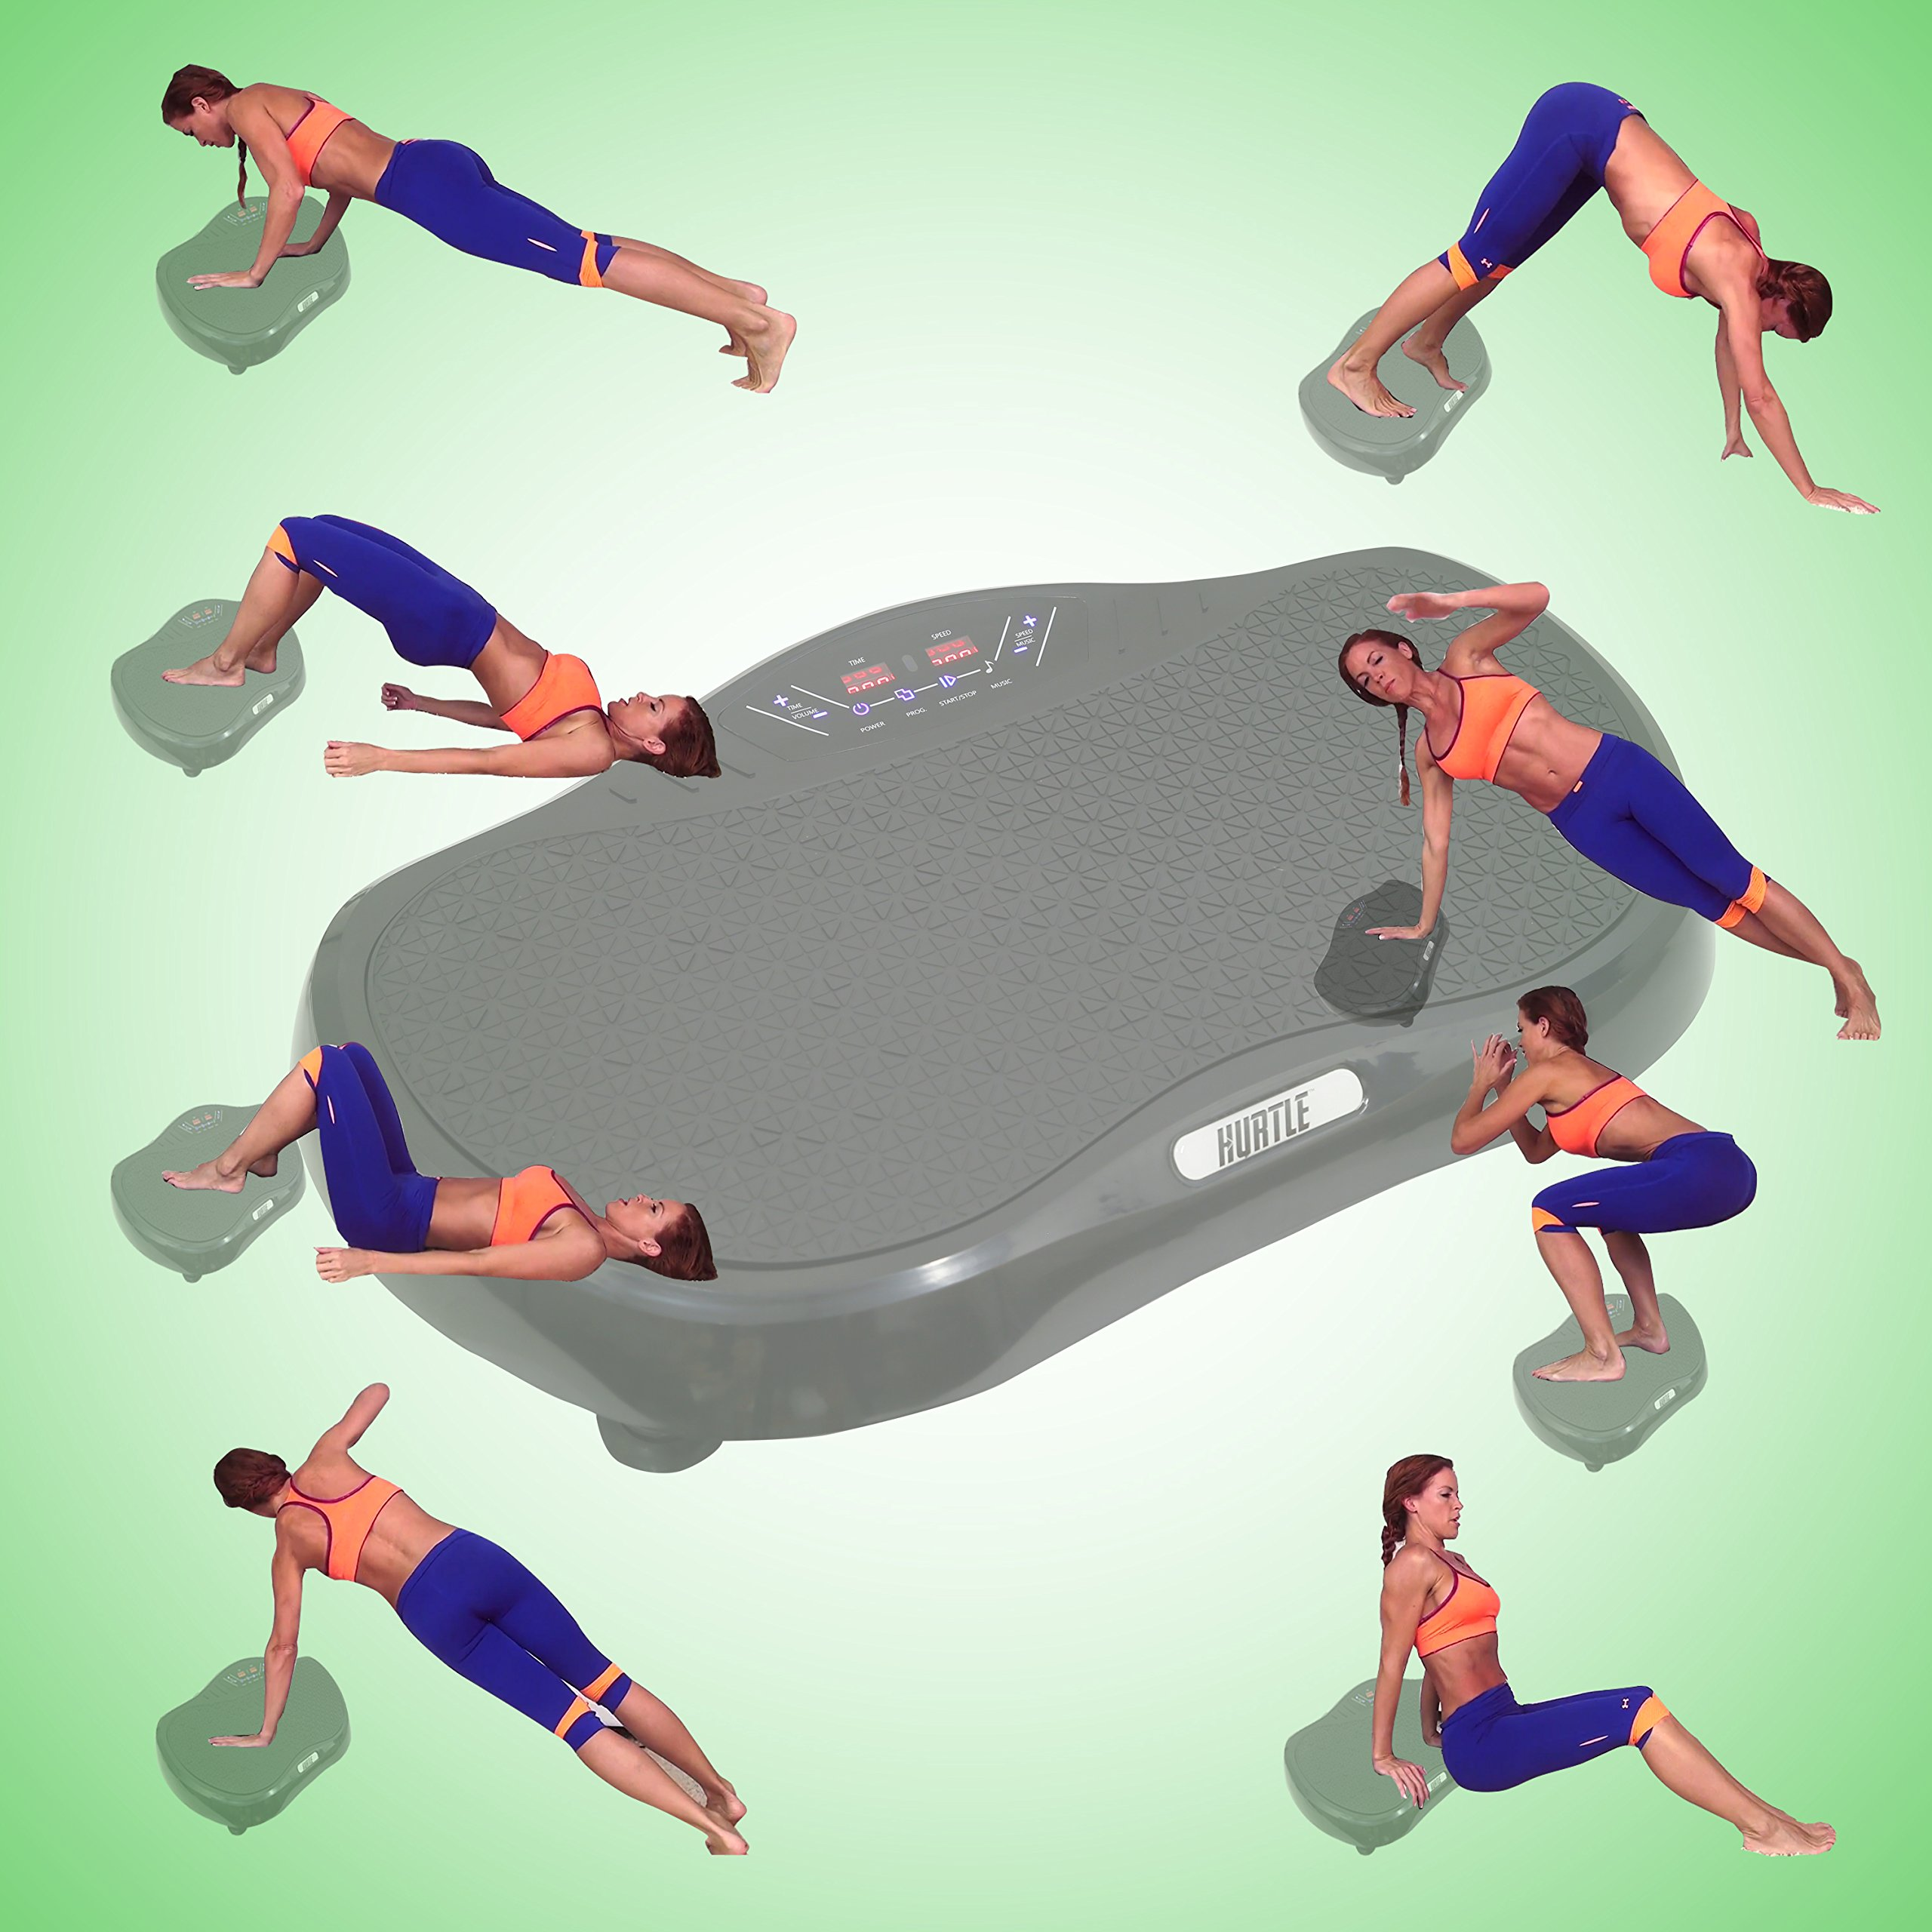 Hurtle Crazy Fit Vibration Fitness Machine - Anti-Slip Vibrating Platform Exercise & Workout Trainer, with Built-in Bluetooth Speakers, Ideal for All Body Types & Age Groups. (HURVBTR35BT) by Hurtle (Image #7)